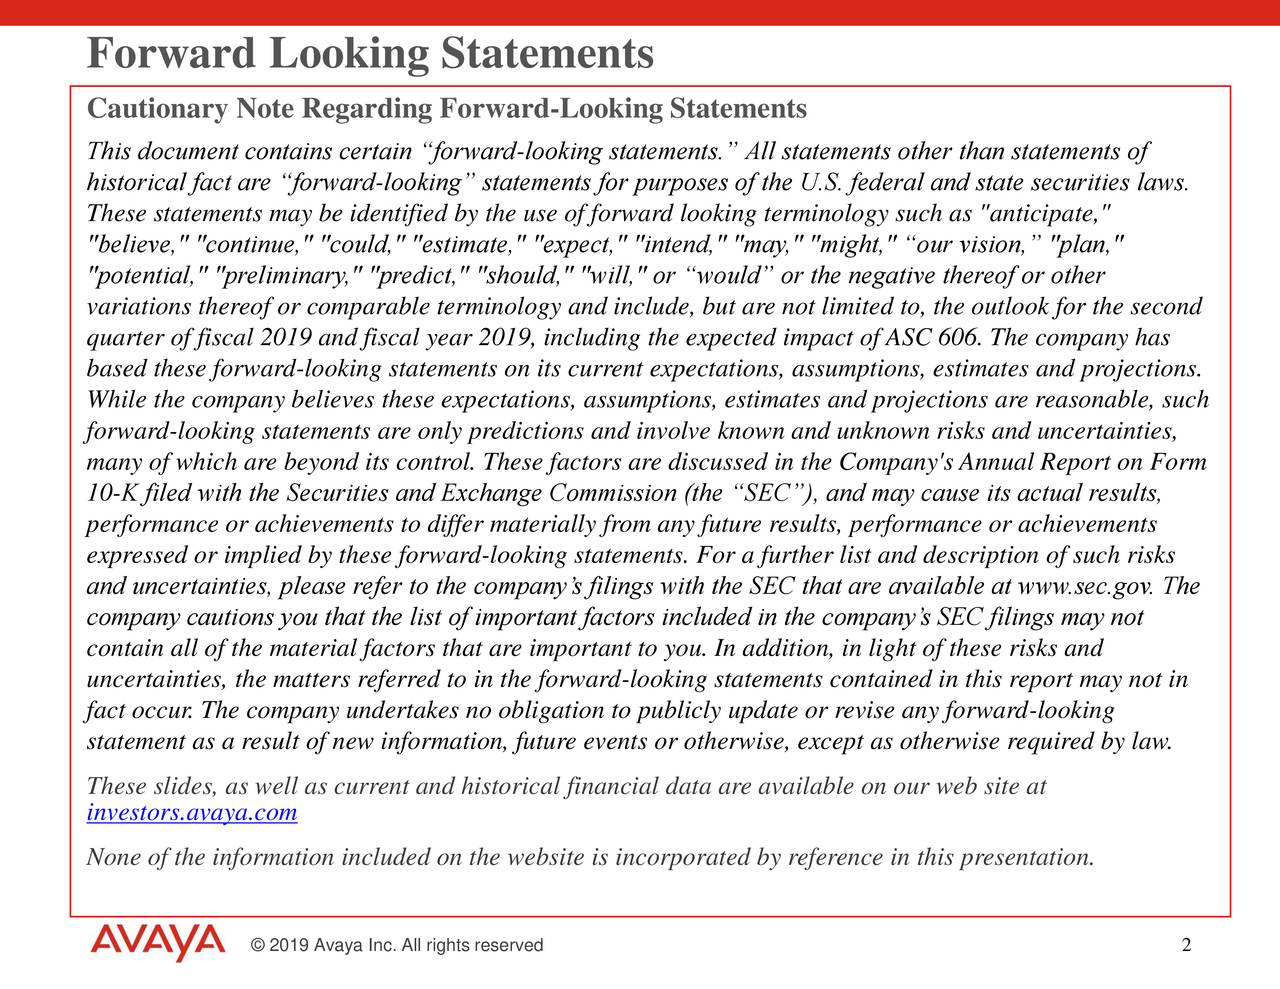 "Cautionary Note Regarding Forward-Looking Statements This document contains certain ""forward-looking statements."" All statements other than statements of historical fact are ""forward-looking"" statements for purposes of the U.S. federal and state securities laws. These statements may be identified by the use of forward looking terminology such as ""anticipate,"" ""believe,"" ""continue,"" ""could,"" ""estimate,"" ""expect,"" ""intend,"" ""may,"" ""might,"" ""our vision,"" ""plan,"" ""potential,"" ""preliminary,"" ""predict,"" ""should,"" ""will,"" or ""would"" or the negative thereof or other variations thereof or comparable terminology and include, but are not limited to, the outlook for the second quarter of fiscal 2019 and fiscal year 2019, including the expected impact of ASC 606. The company has based these forward-looking statements on its current expectations, assumptions, estimates and projections. While the company believes these expectations, assumptions, estimates and projections are reasonable, such forward-looking statements are only predictions and involve known and unknown risks and uncertainties, many of which are beyond its control. These factors are discussed in the Company's Annual Report on Form 10-K filed with the Securities and Exchange Commission (the ""SEC""), and may cause its actual results, performance or achievements to differ materially from any future results, performance or achievements expressed or implied by these forward-looking statements. For a further list and description of such risks and uncertainties, please refer to the company's filings with the SEC that are available at www.sec.gov. The company cautions you that the list of important factors included in the company's SEC filings may not contain all of the material factors that are important to you. In addition, in light of these risks and uncertainties, the matters referred to in the forward-looking statements contained in this report may not in fact occur. The company undertakes no obligation to publicly update or revise any forward-looking statement as a result of new information, future events or otherwise, except as otherwise required by law. investors.avaya.comll as current and historical financial data are available on our web site at None of the information included on the website is incorporated by reference in this presentation. © 2019 Avaya Inc. All rights reserved 2"